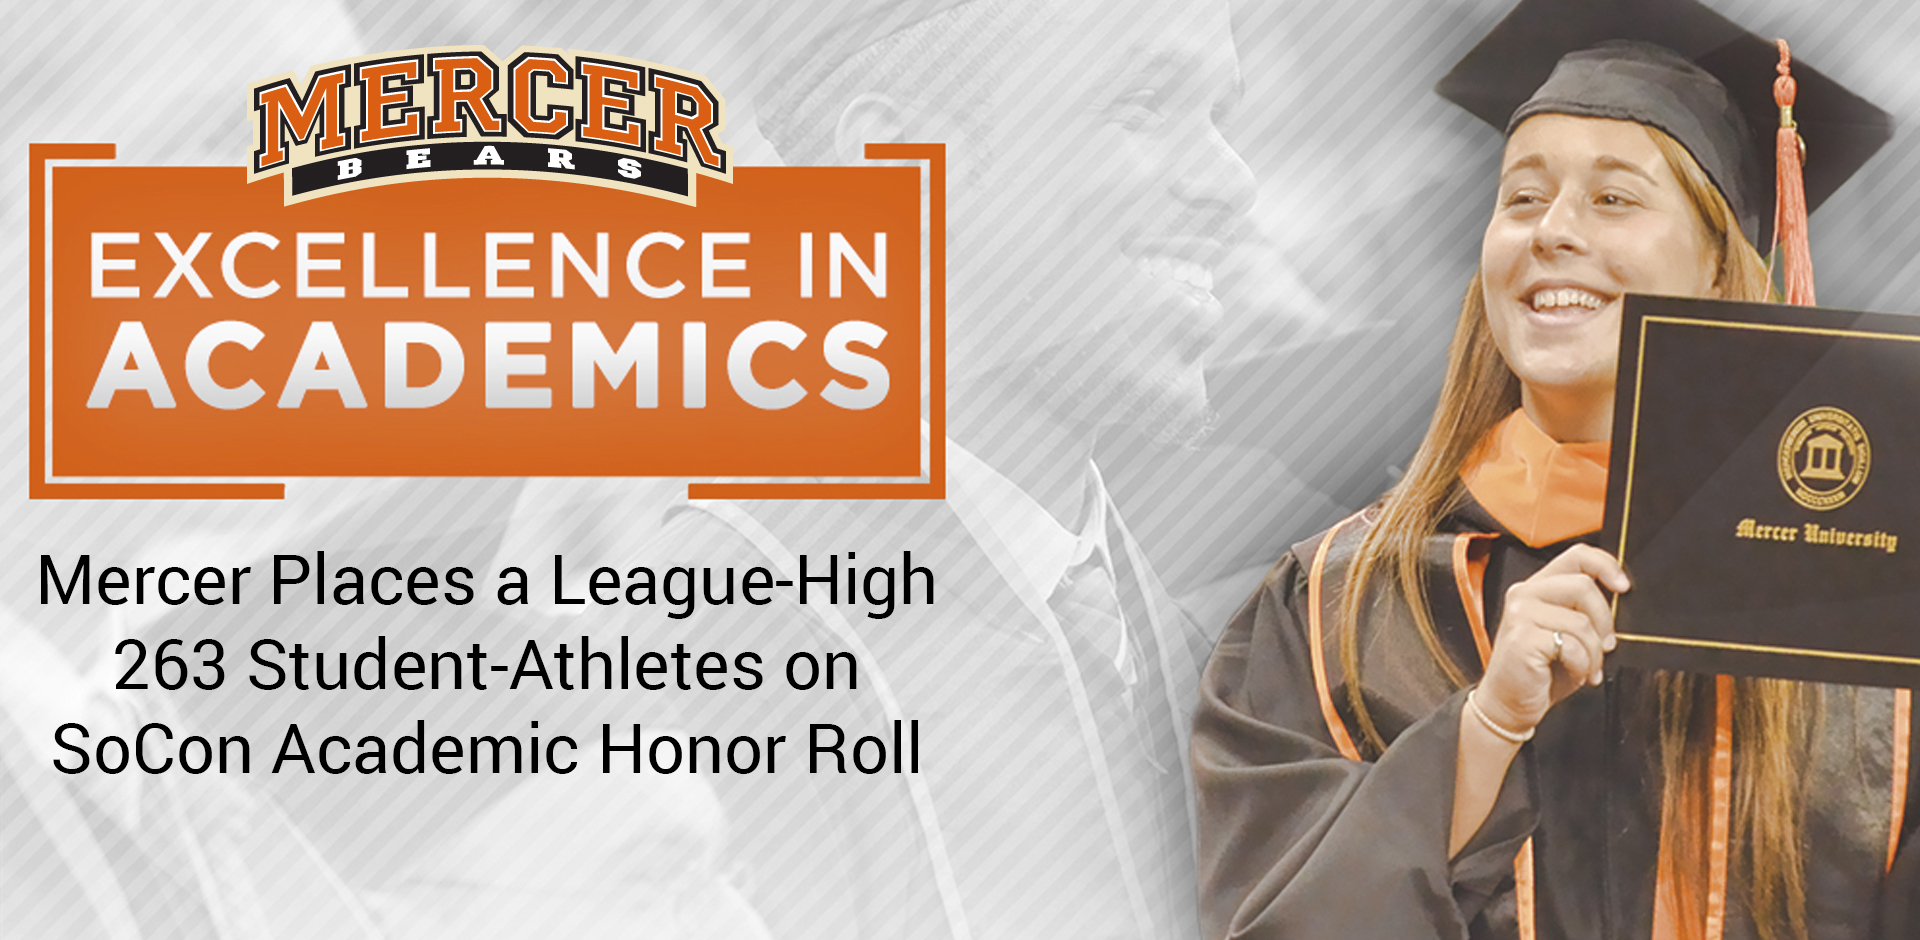 Mercer Places a League-High 263 Student-Athletes on SoCon Academic Honor Roll